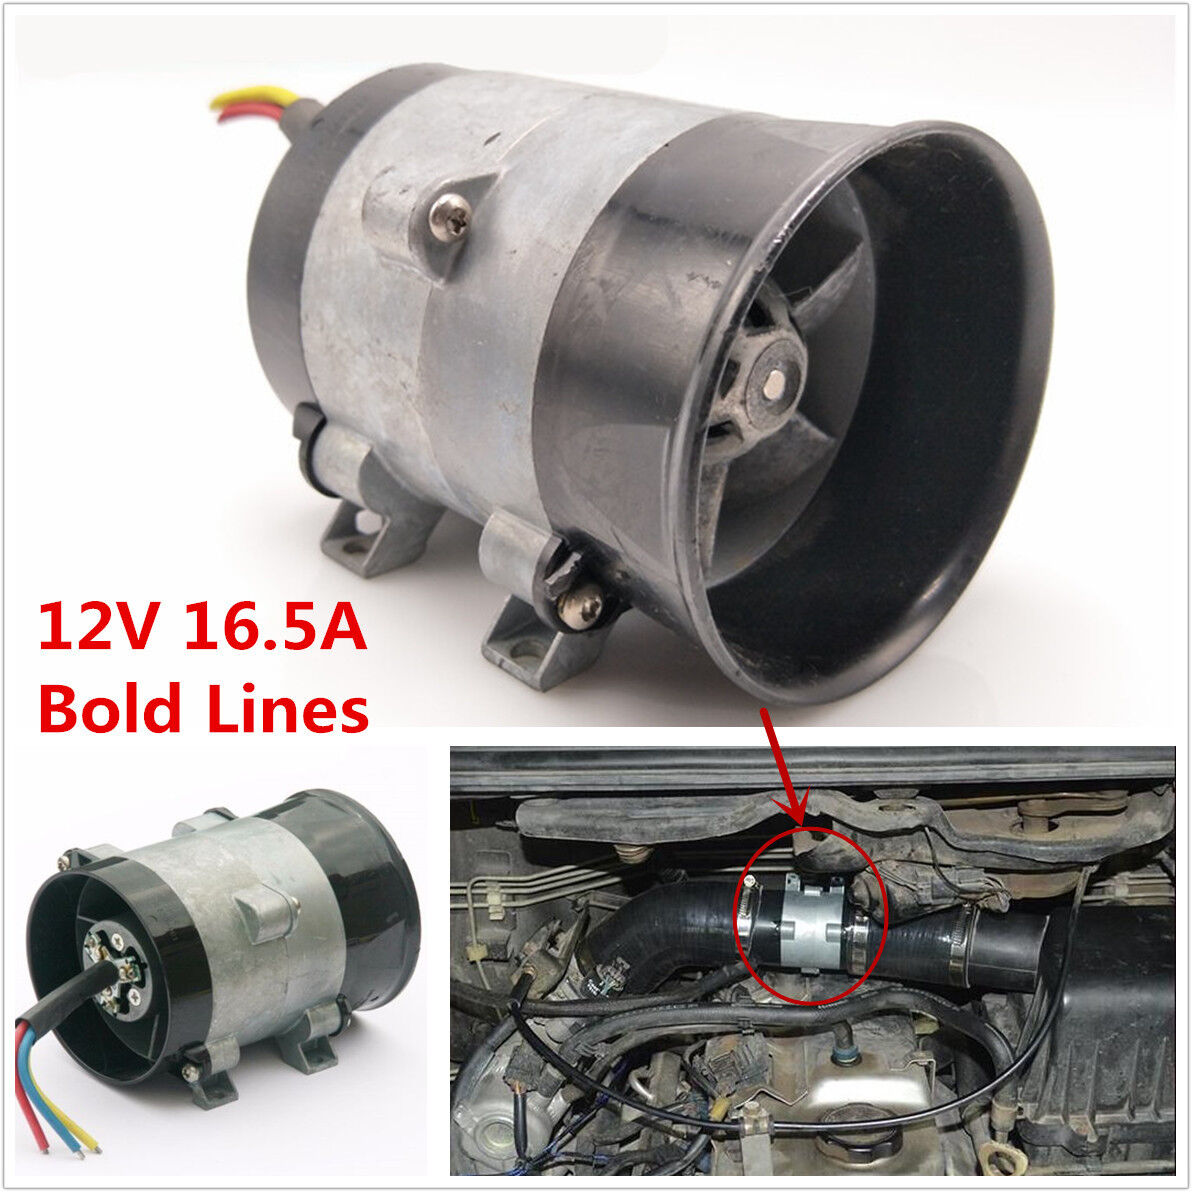 DC12V 16.5A 300W Car Three-phase Electric Turbine Turbo Fan Turbo charger Boost